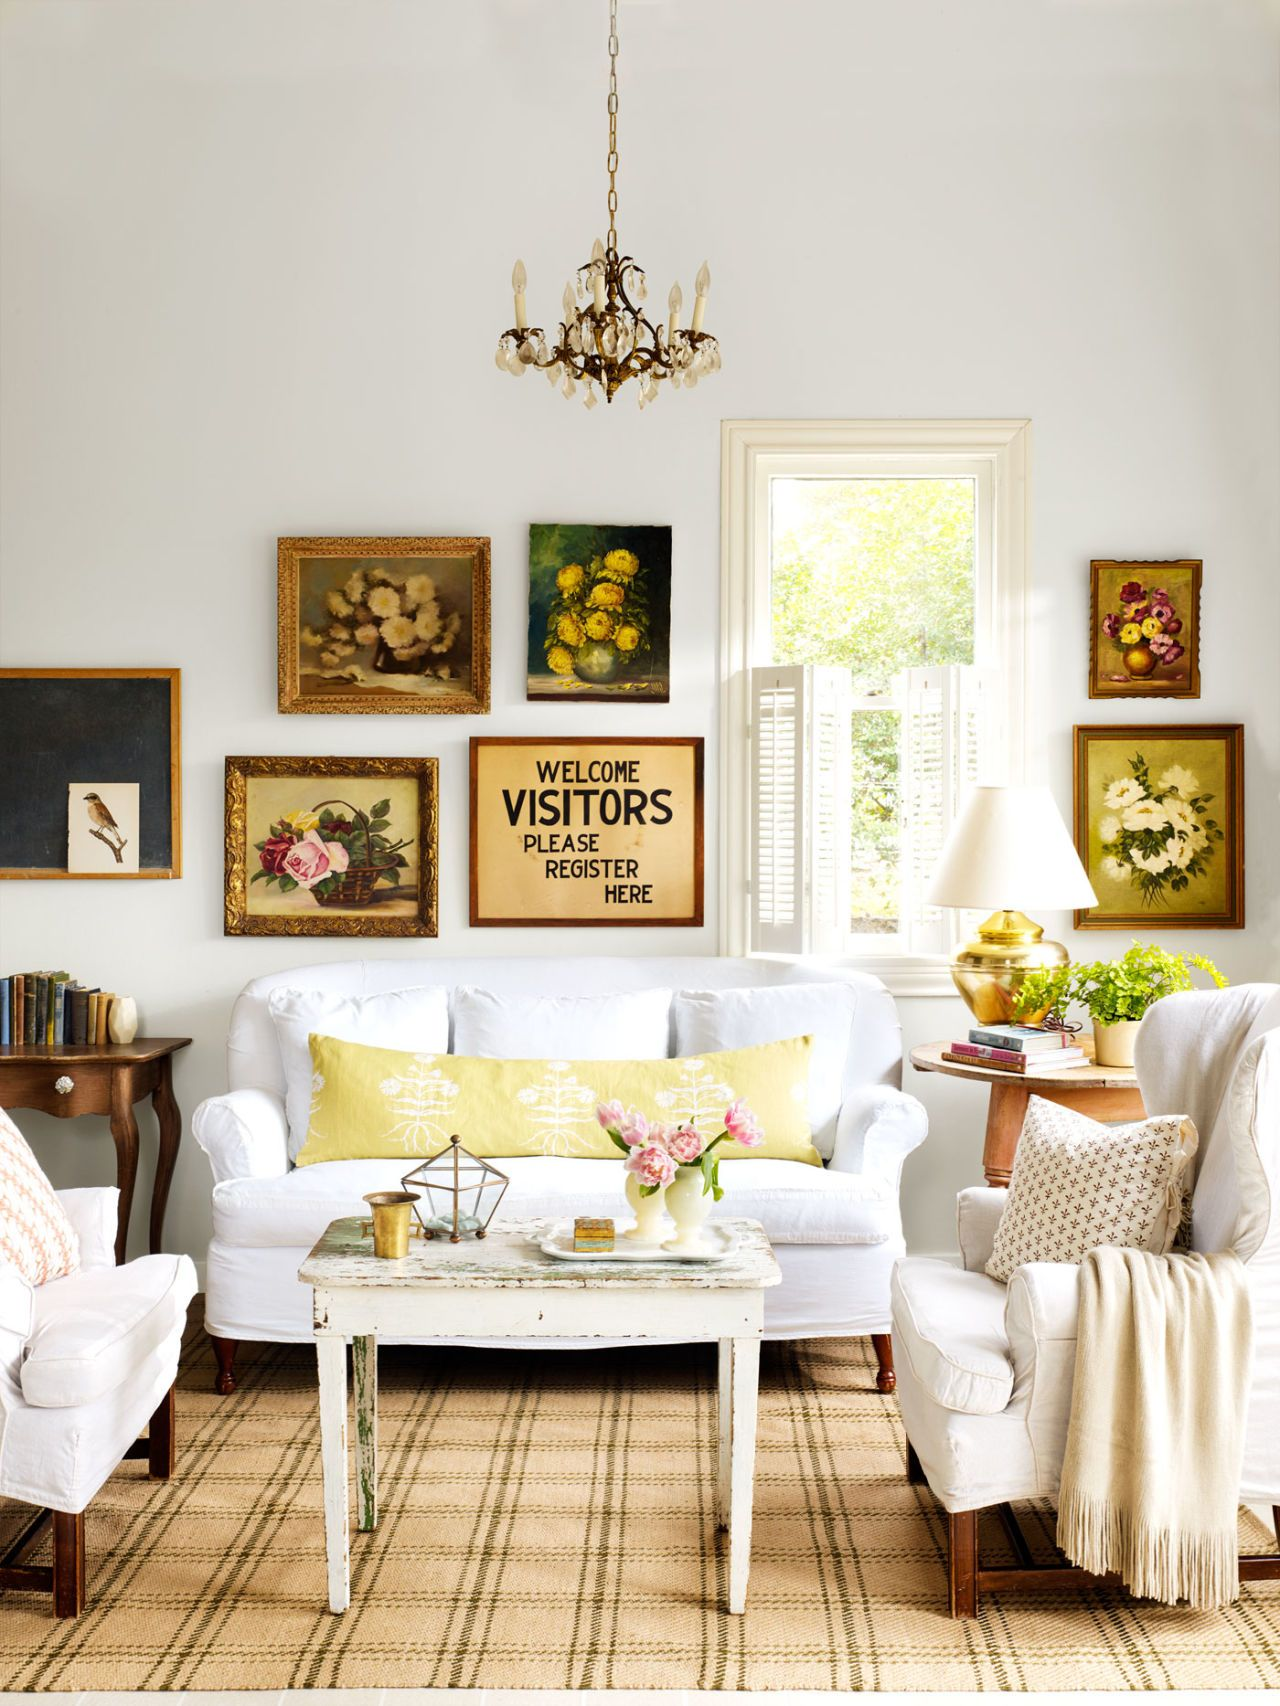 10 Ways To Create Downhome Charm On A Dime  Gallery Wall Thrift Classy Living Room Design Photos Gallery Inspiration Design